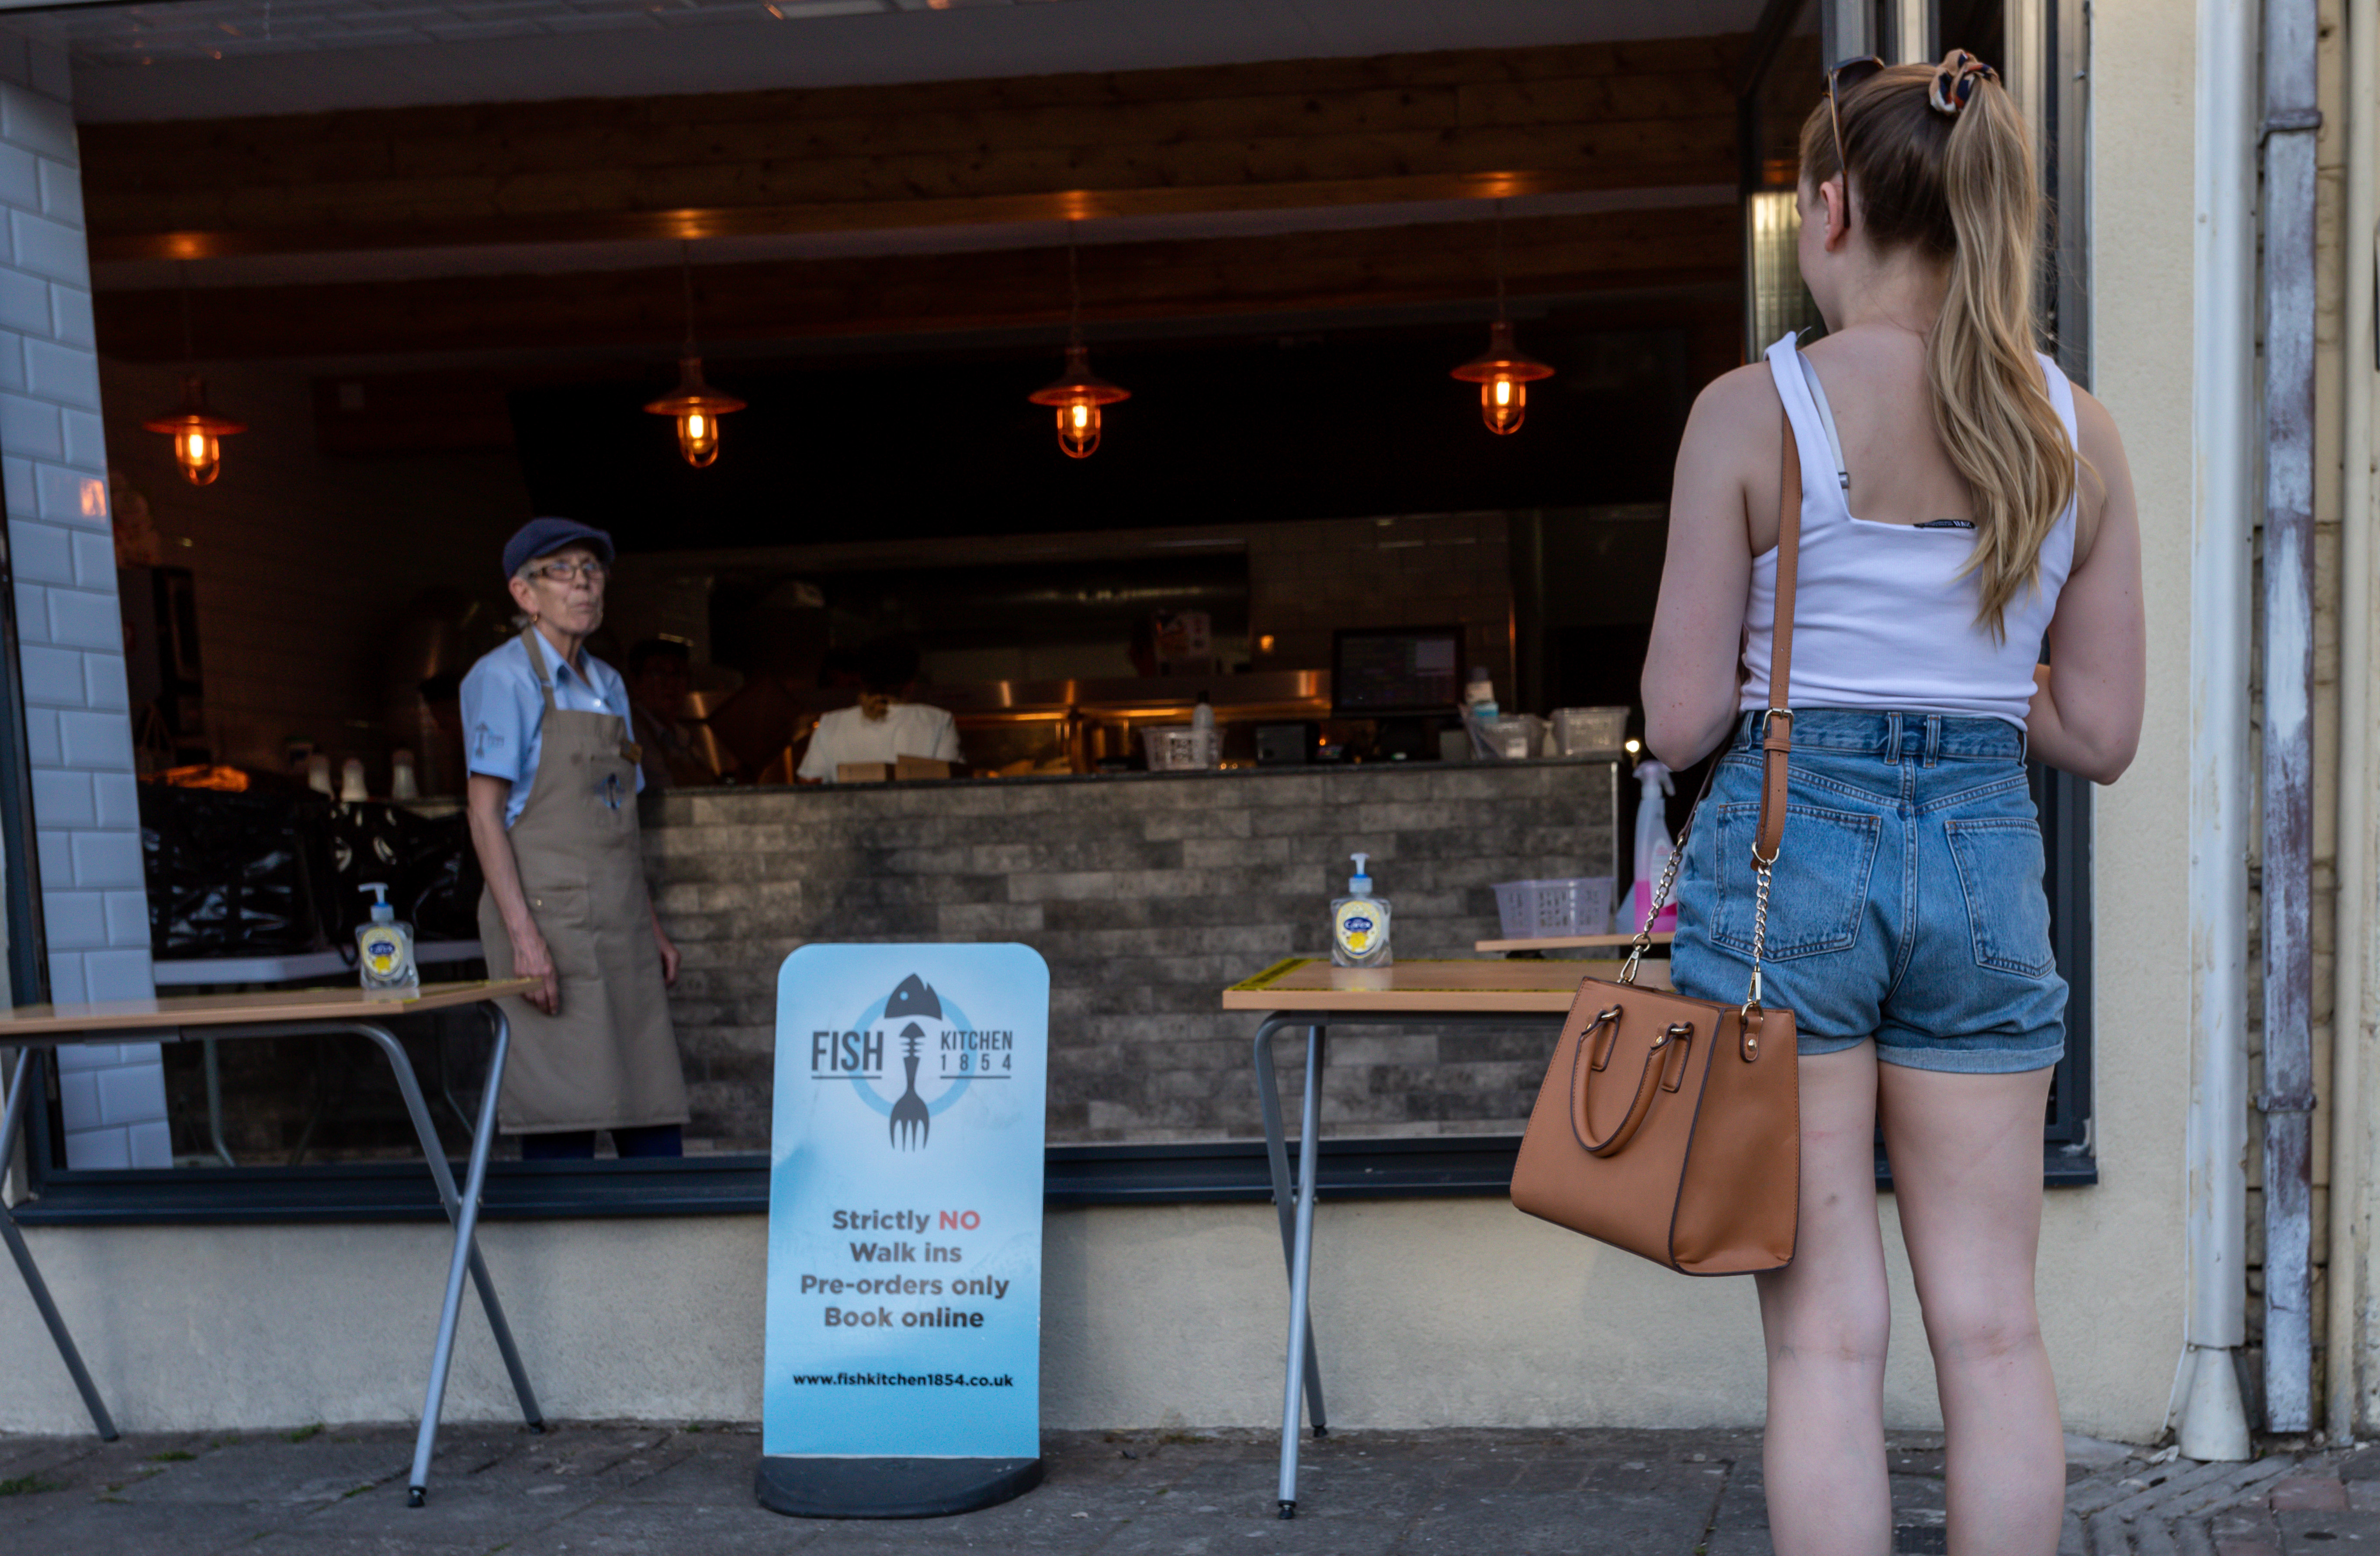 MAESYCWMMER, WALES  - MAY 29:  A customer waits to pick up her order from Fish Kitchen 1854, a traditional fish and chip shop which has reopened for online orders only on May 29, 2020 in Maesycwmmer, Wales, United Kingdom.The British government continues to ease the coronavirus lockdown by announcing schools will open to reception year pupils plus years one and six from June 1st. Open-air markets and car showrooms can also open from the same date.  (Photo by Huw Fairclough/Getty Images)